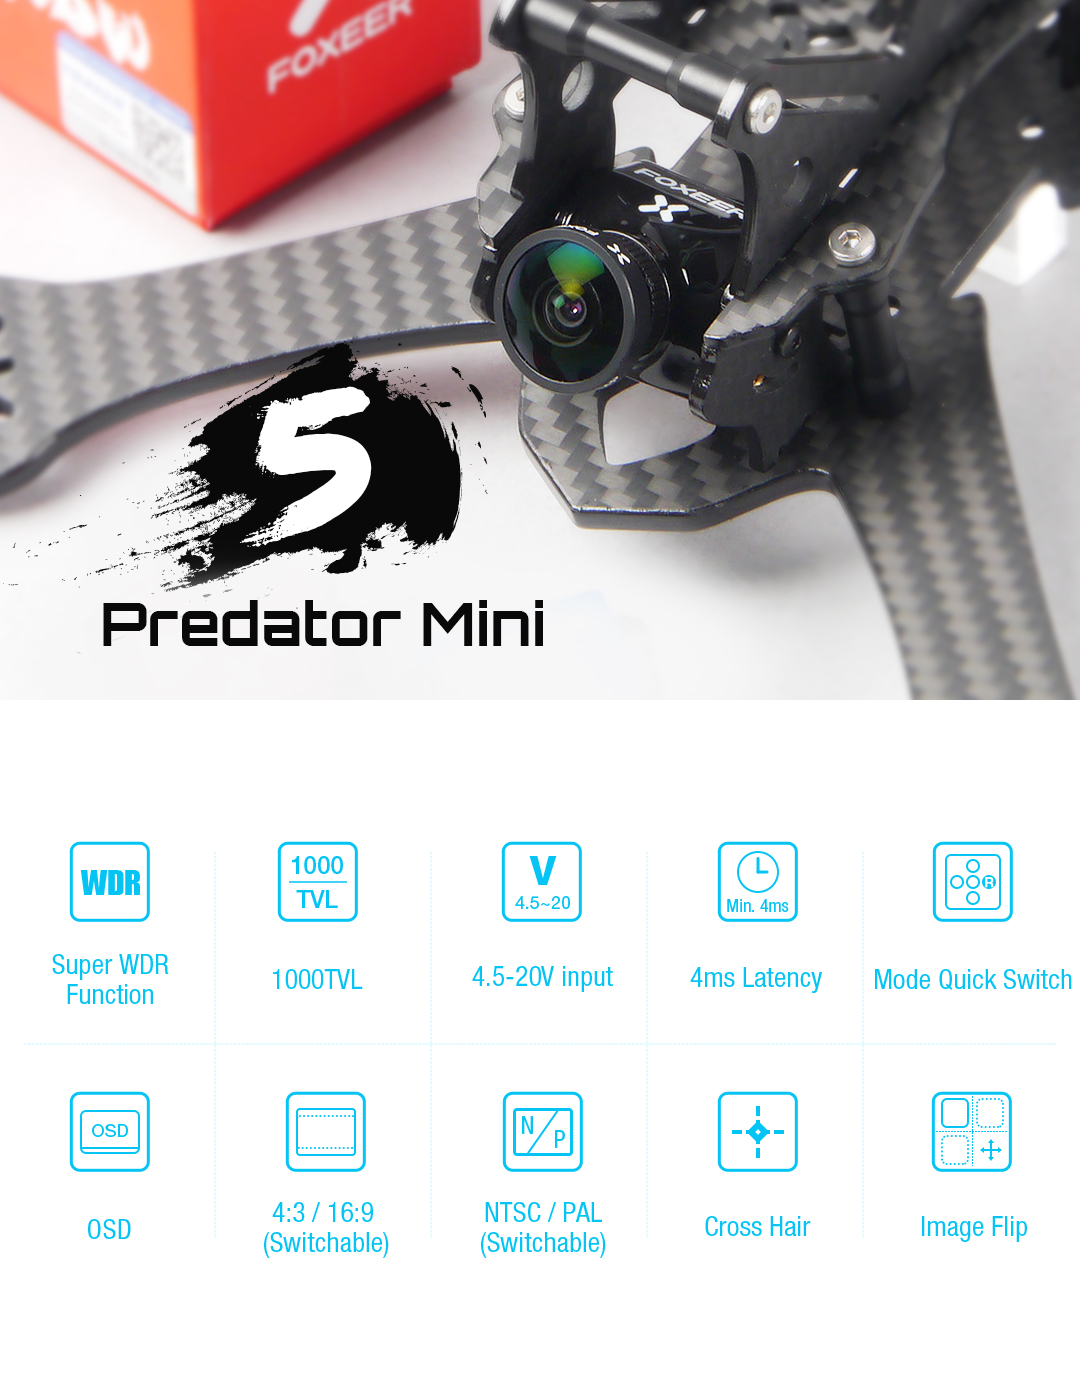 foxeer mini predator 5 racing fpv camera 4ms latency super wdr mantisfpv